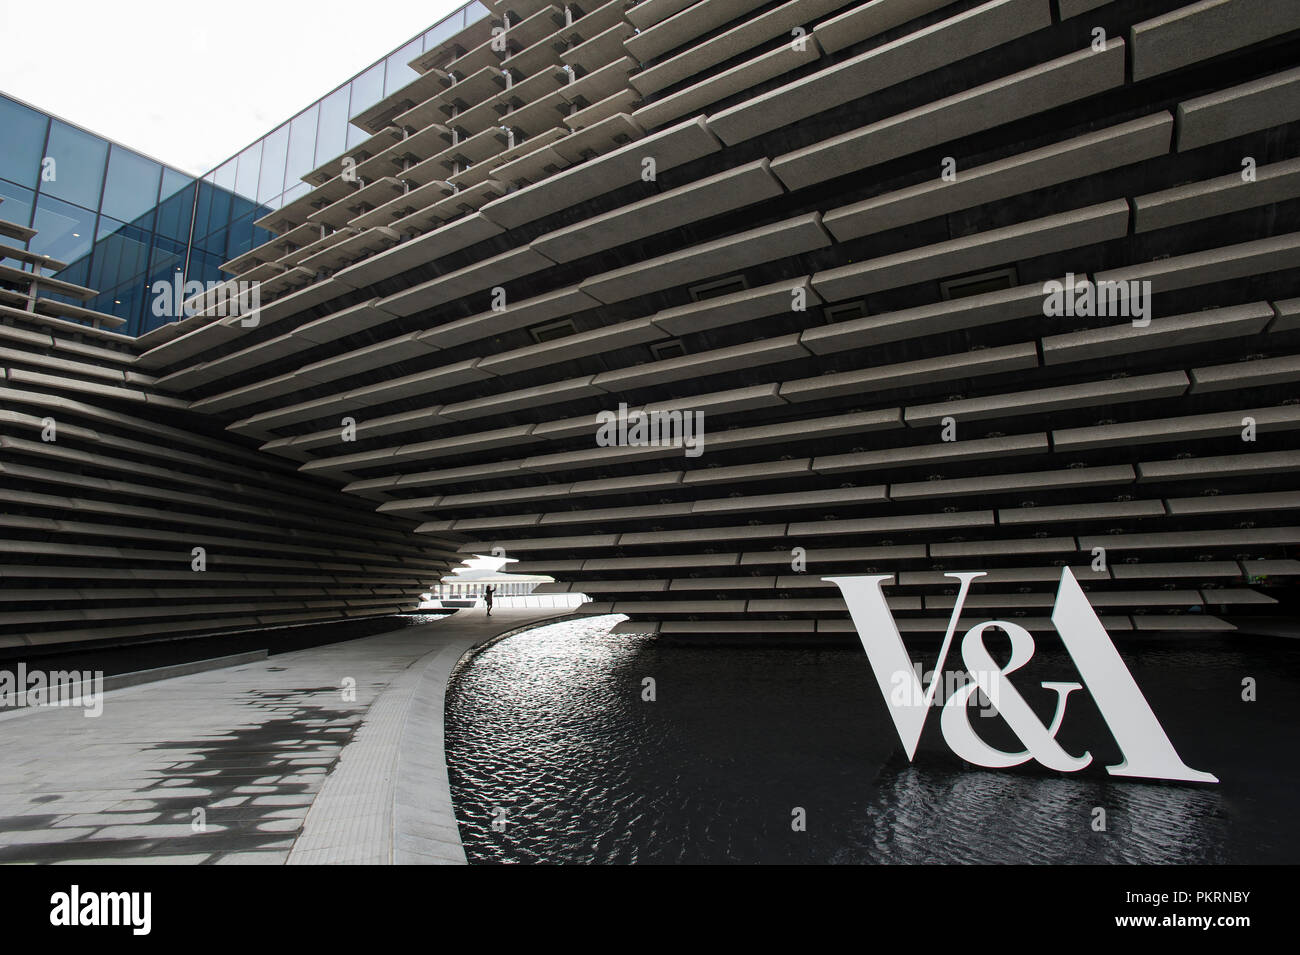 Exterior view of the new V & A design museum on the Dundee waterfront, Dundee, Scotland. - Stock Image